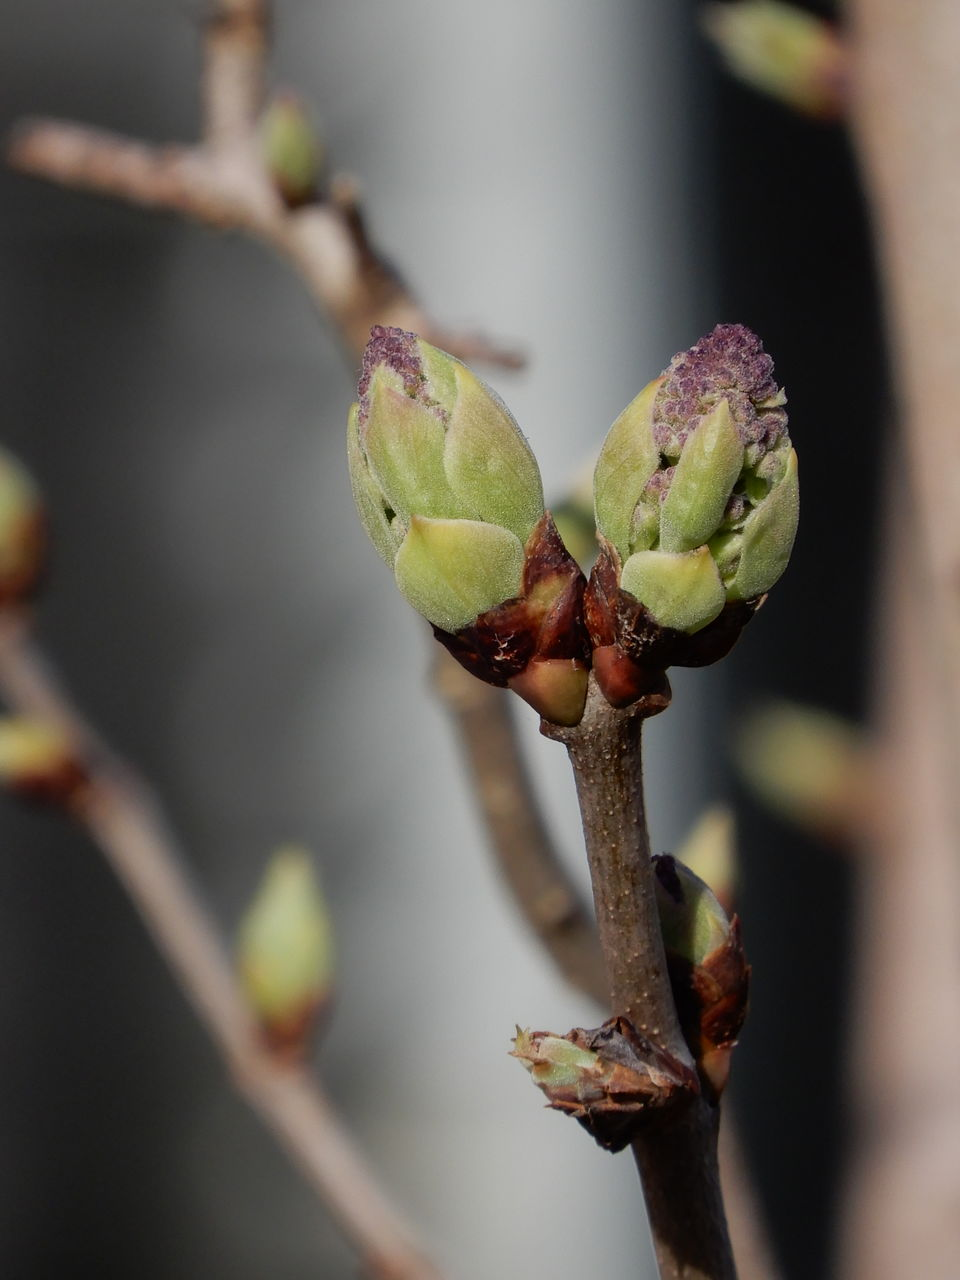 plant, growth, close-up, beginnings, focus on foreground, bud, new life, flower, no people, day, nature, beauty in nature, fragility, freshness, selective focus, branch, vulnerability, plant stem, twig, flowering plant, outdoors, spring